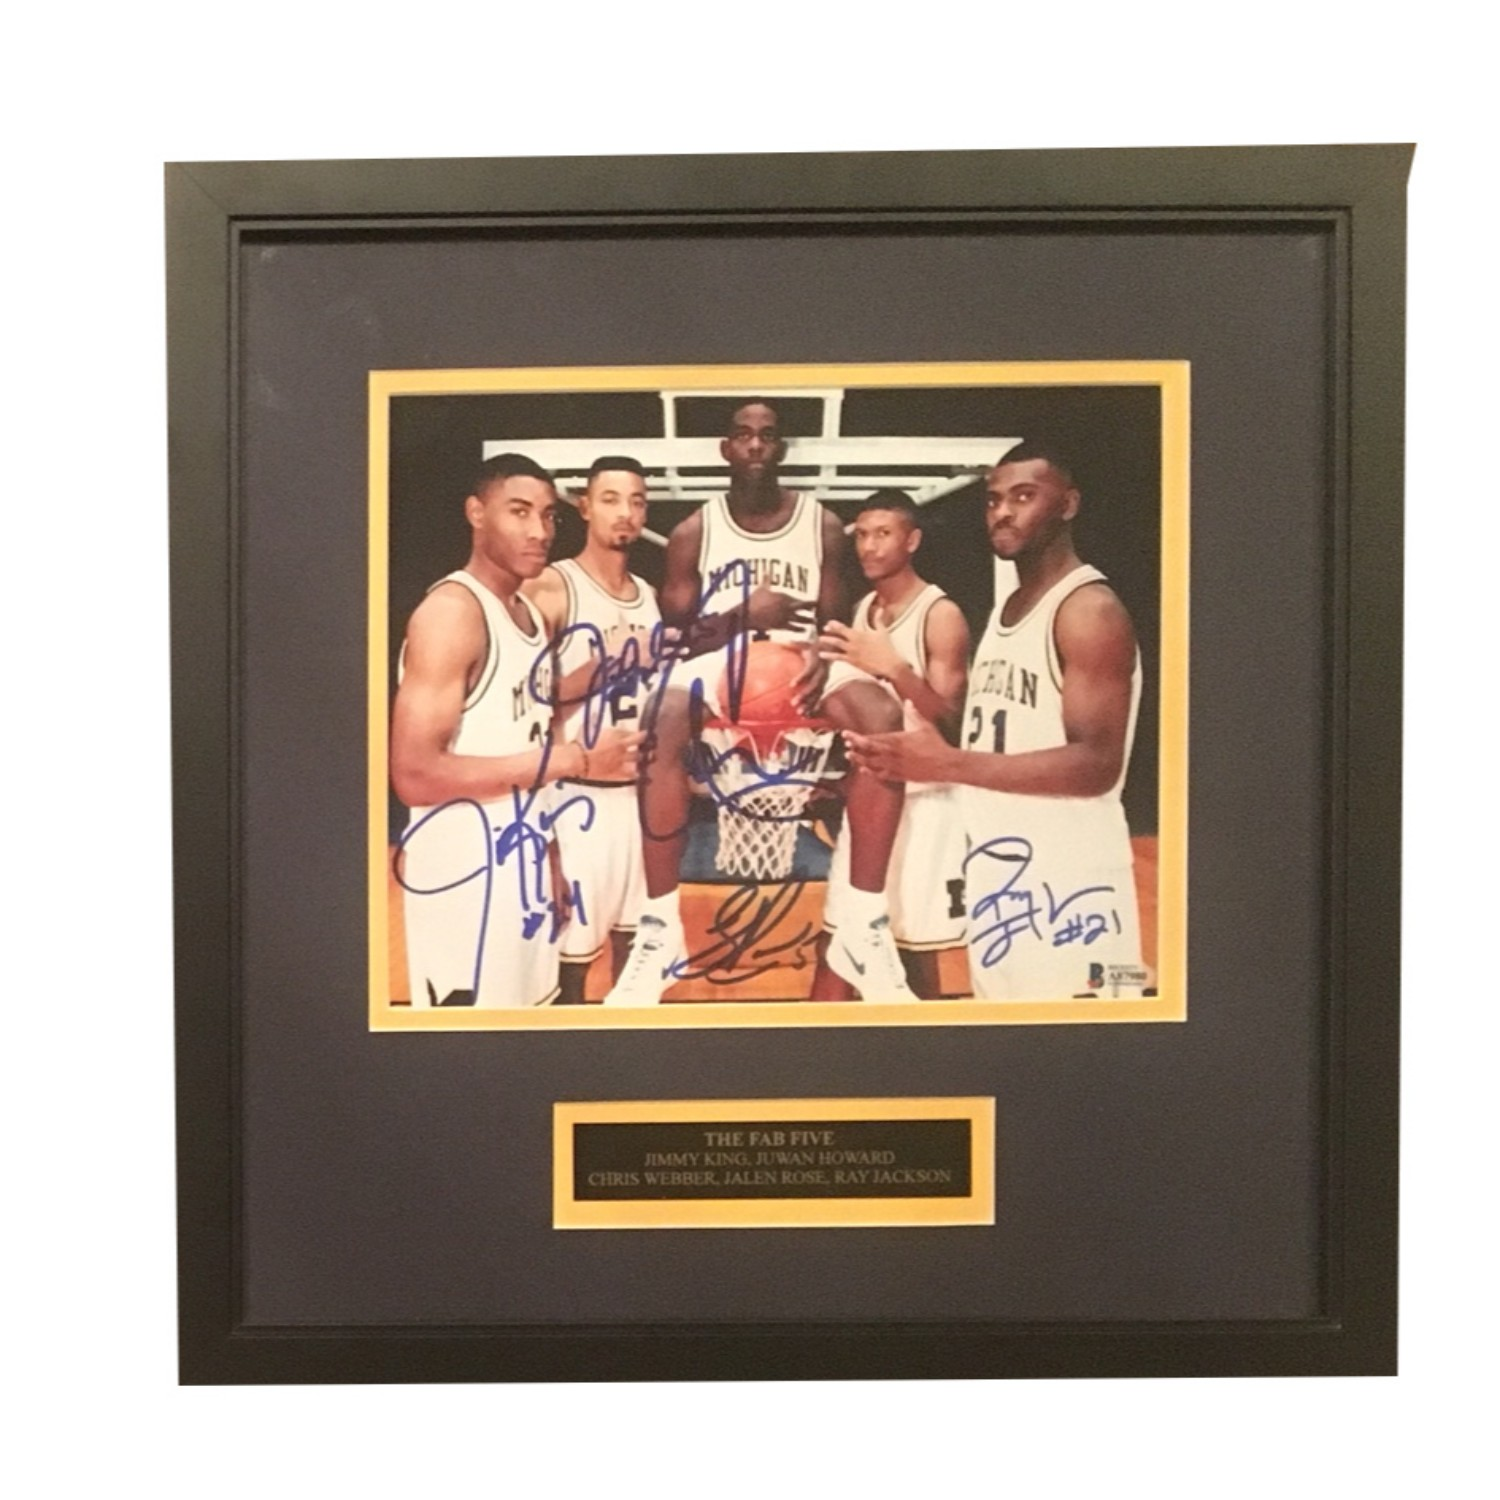 buy popular c319c cb3f6 Fab Five Autographed Michigan Basketball Signed 8x10 Photo ...